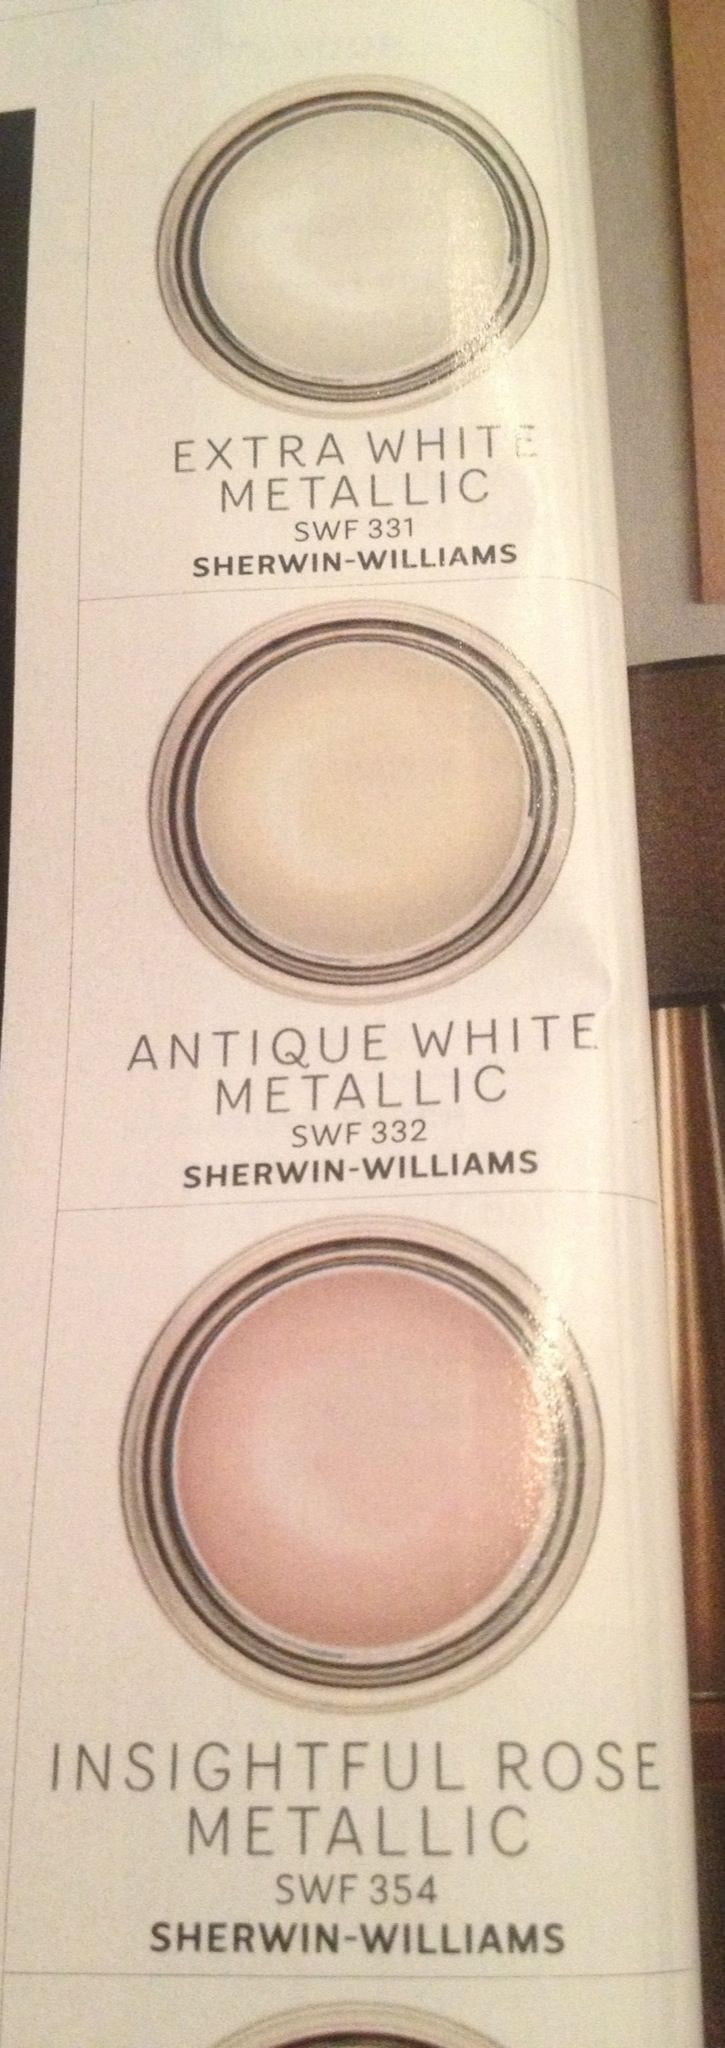 Metallic Paint Colors Sherwin Williams Metallic Paint Colors Sherwin Williams Paint Colors Metallic Paint